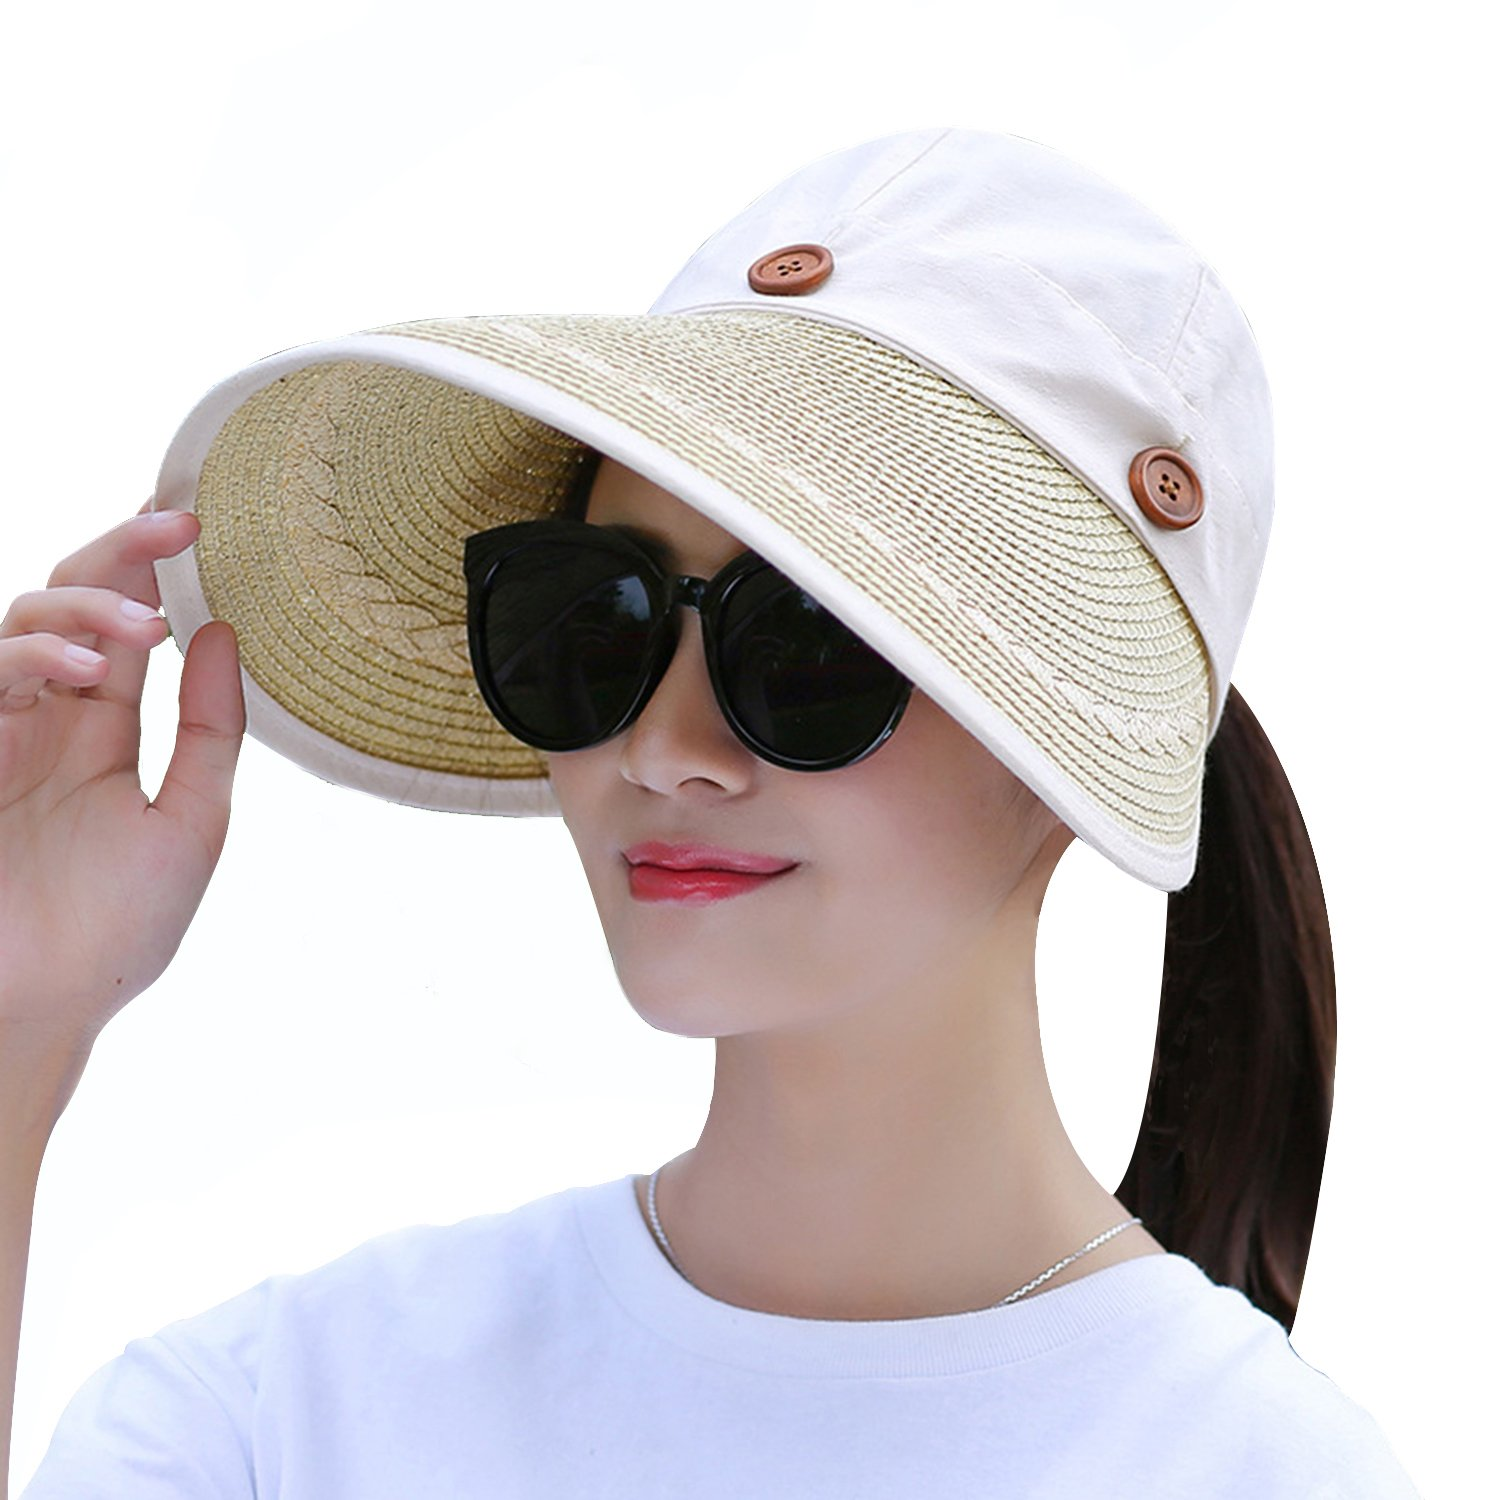 Women s Wide Brim Floppy Caps Packable Straw Sun Hat Summer UV Protection  Hats with Chin Strap for Women Beach Glof Beige at Amazon Women s Clothing  store  9ba9d378680